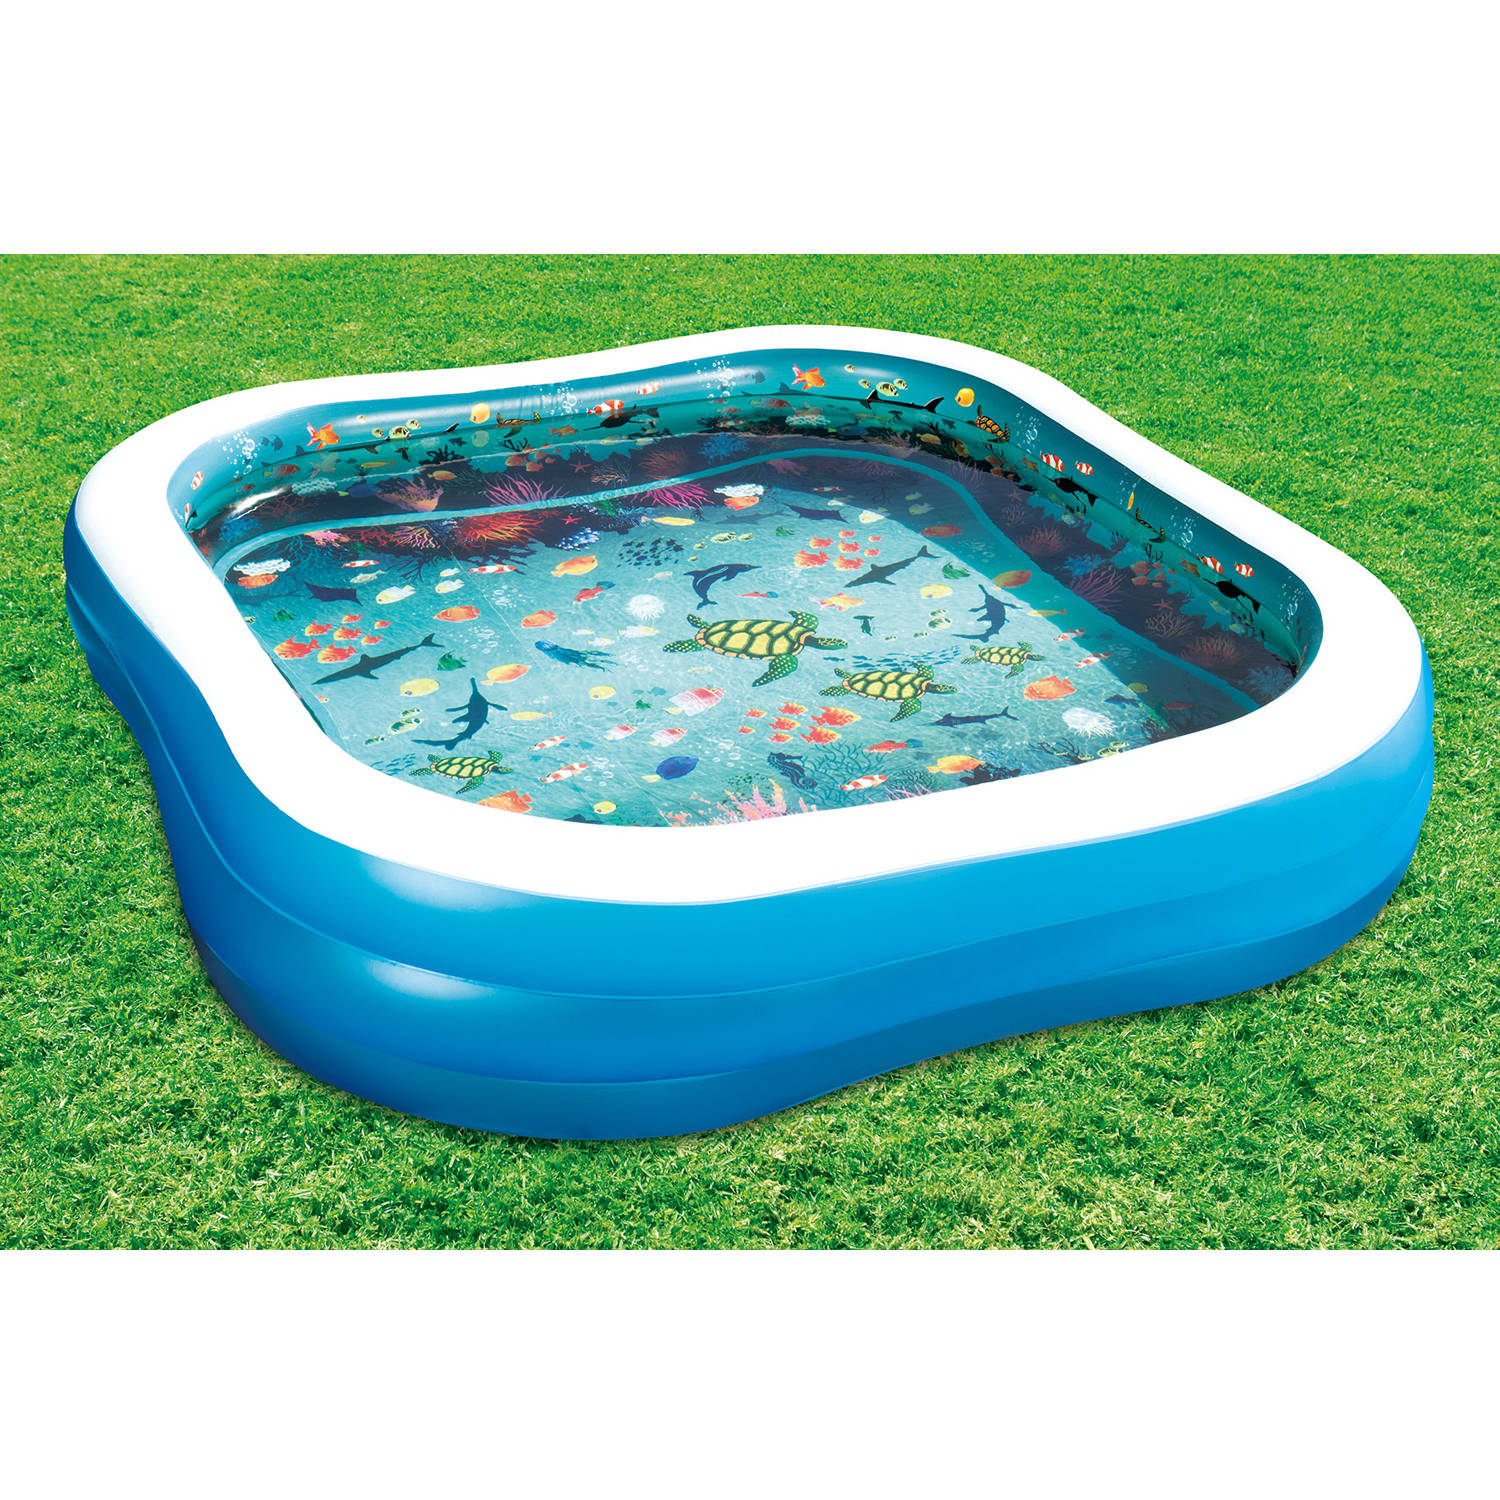 100 Swimming Pools U0026 Waterslides Walmart Coleman 12 U0027 X 36 Intex 18 U0027 X 10 U0027 X